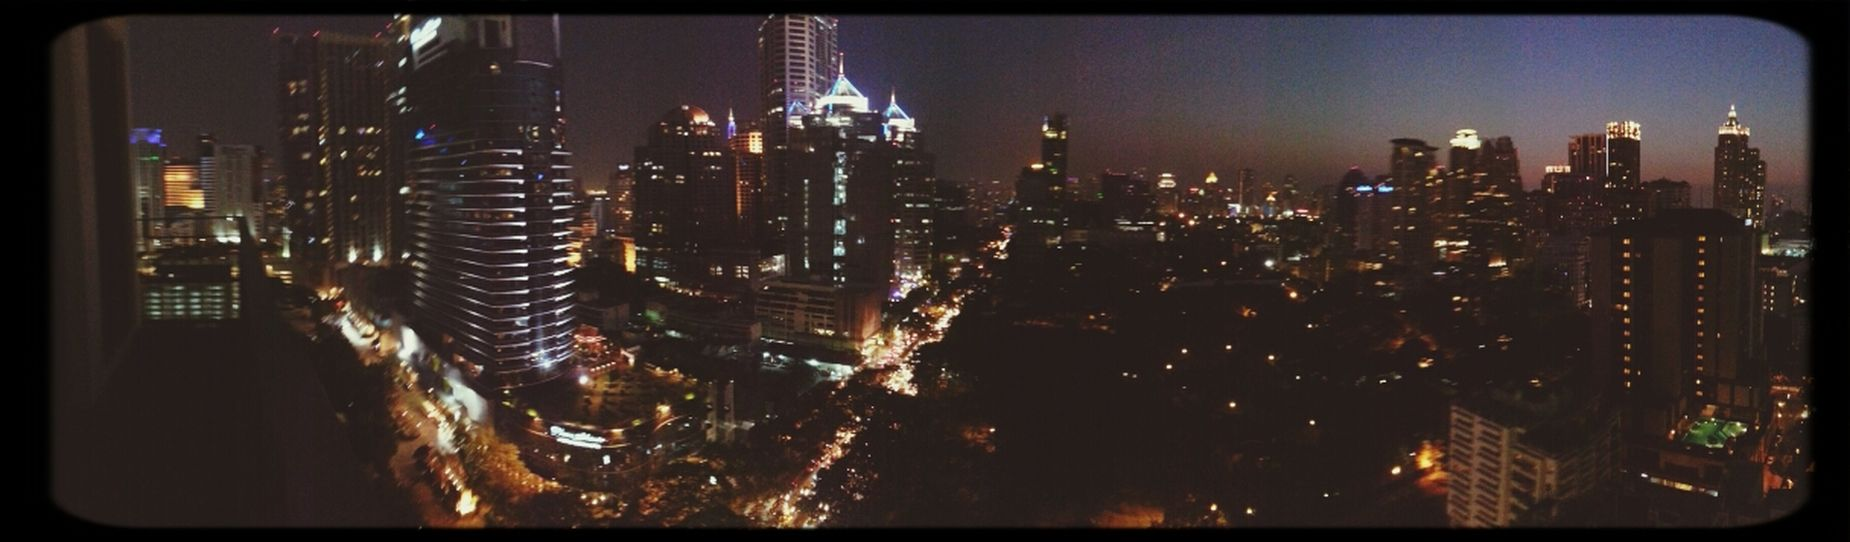 What I Want To Shoot With A 360 Panono Camera Cityscapes Urban Jungle Bangkok Thailand. shot with my phone wish it was more hd